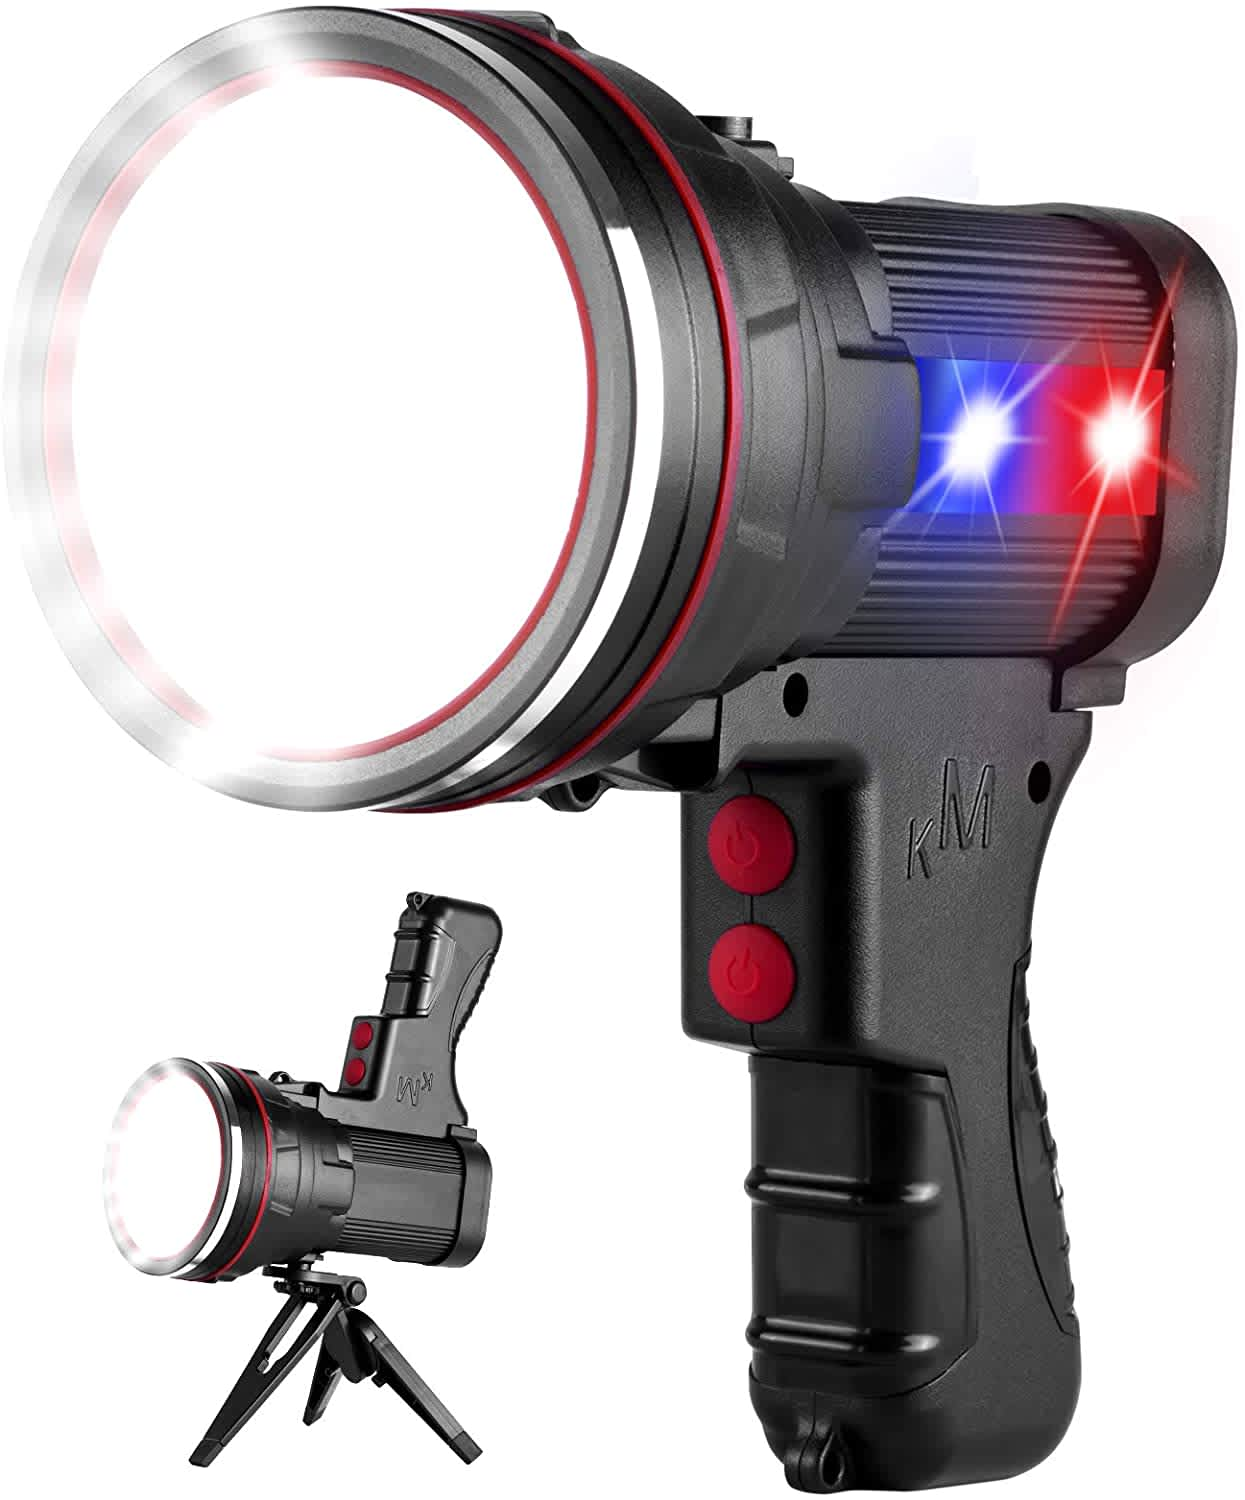 Ocsmt LED Rechargeable Spotlight Flashlight with Tripod